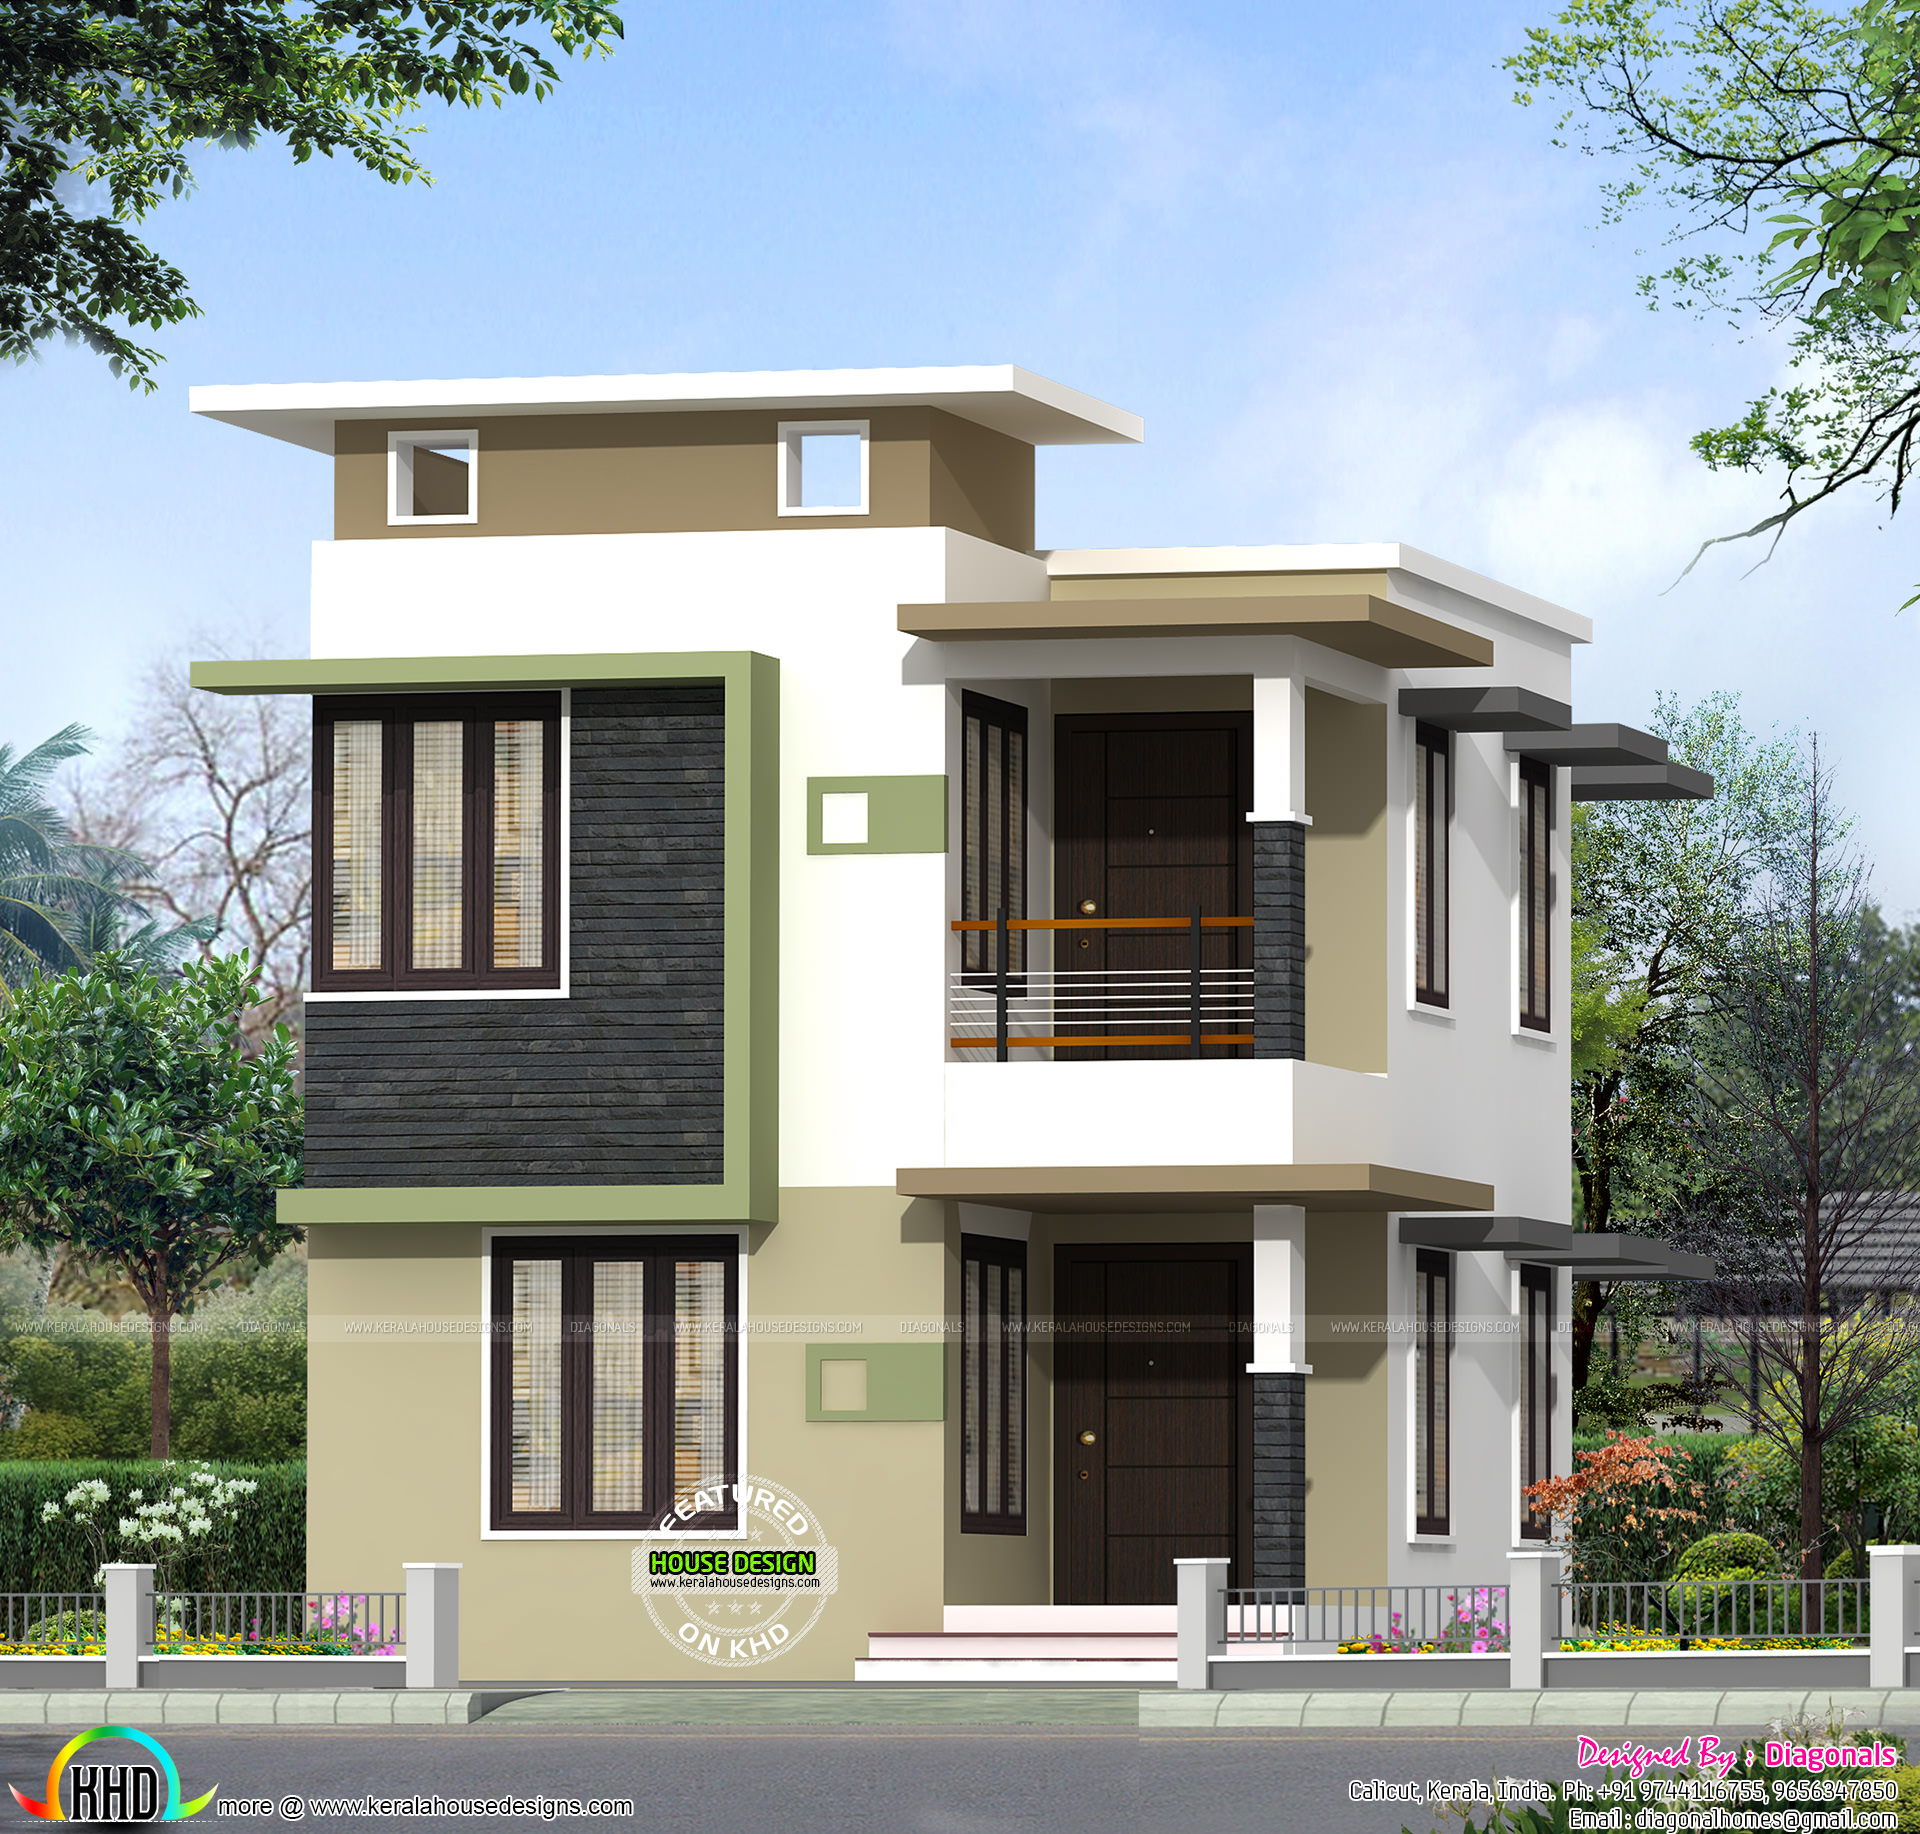 Modern house design architecture the sims houses pinterest indian house designs and indian house